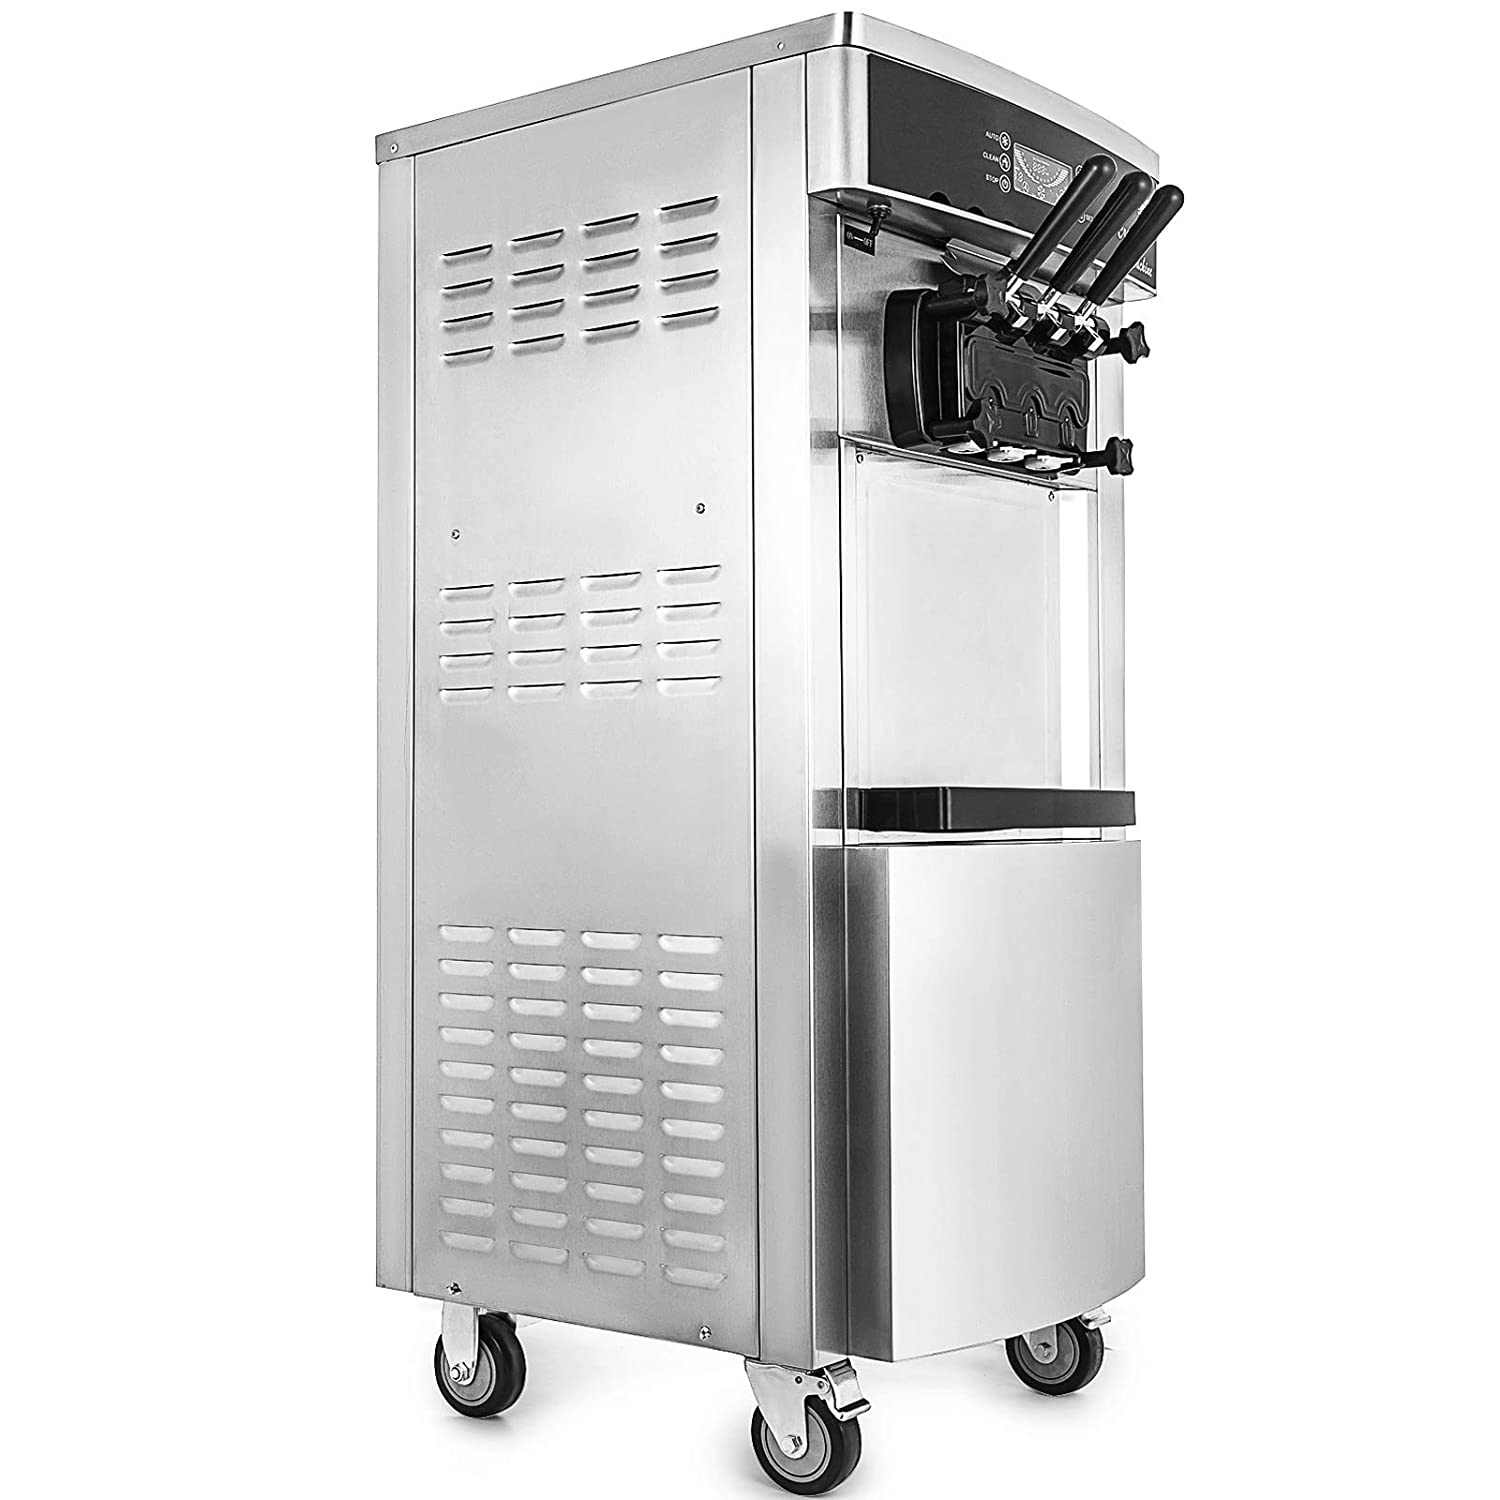 Happybuy 2200W Soft Ice Cream Machine Commercial 5.3-7.4Gallons/H Ice Cream Machine AUTO Clean Function Vertical Suitable for Restaurants Bars Cafes Bakeries